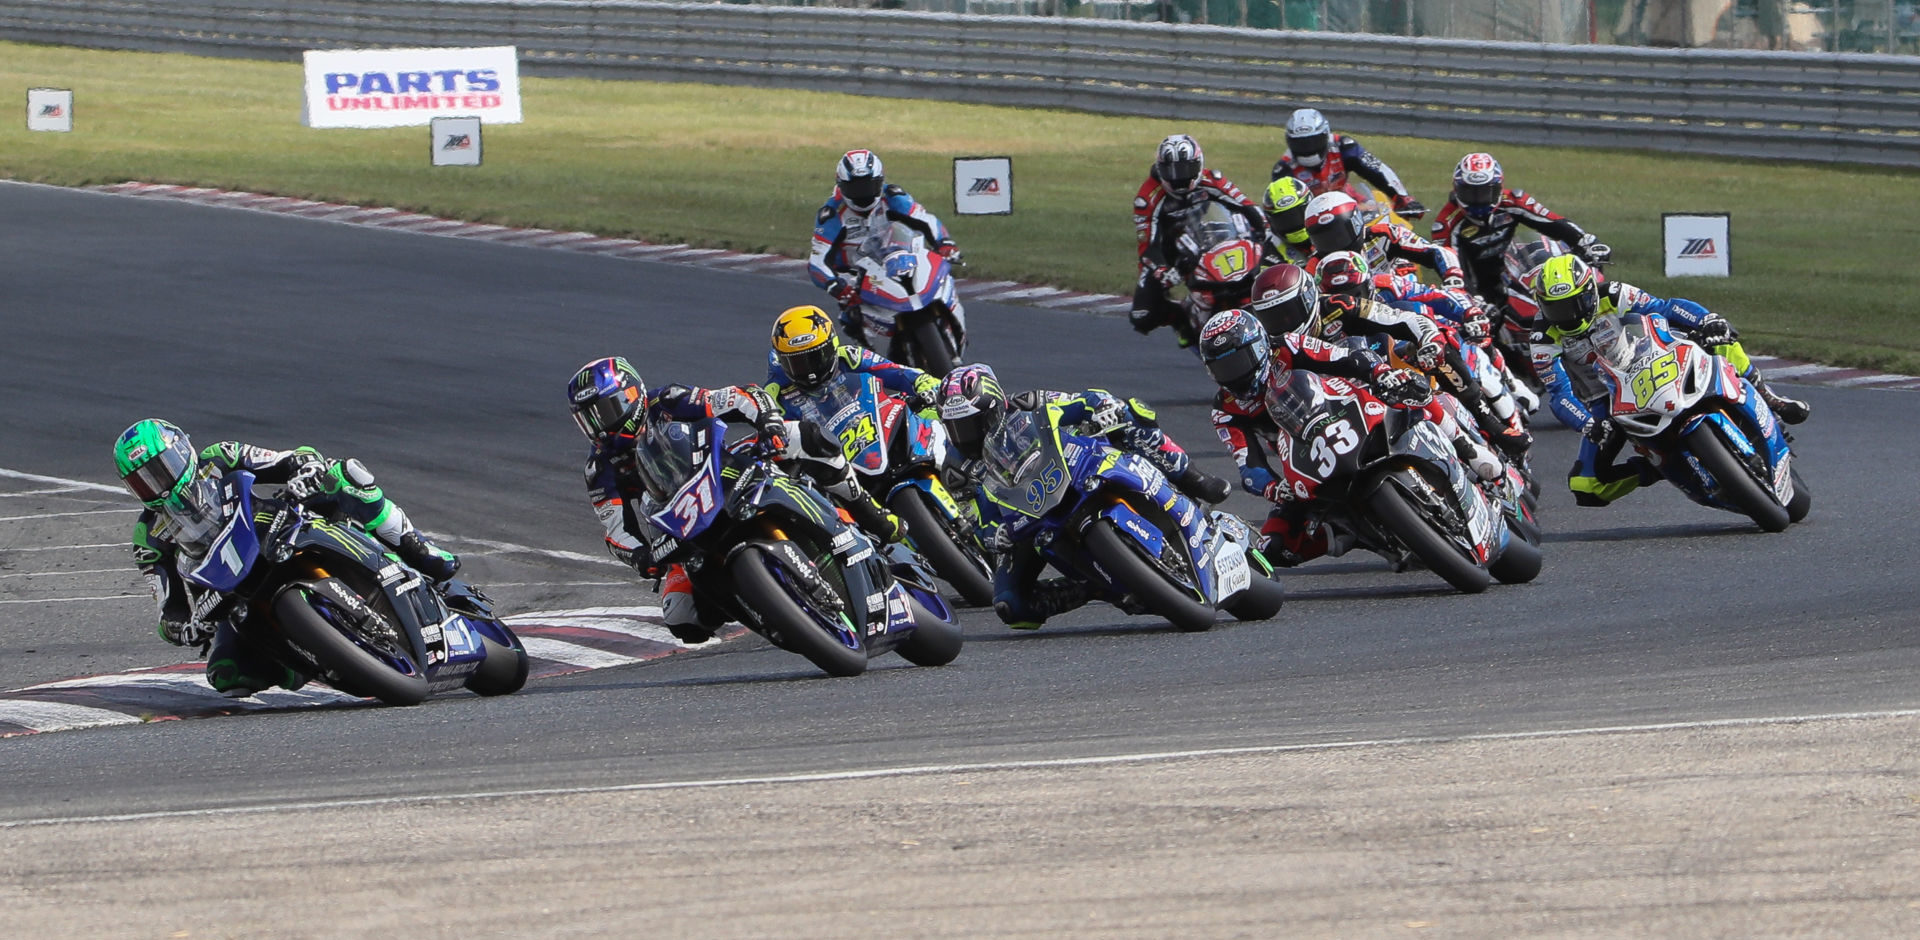 The start of MotoAmerica Superbike Race One at New Jersey Motorsports Park in 2019. Photo by Brian J. Nelson.